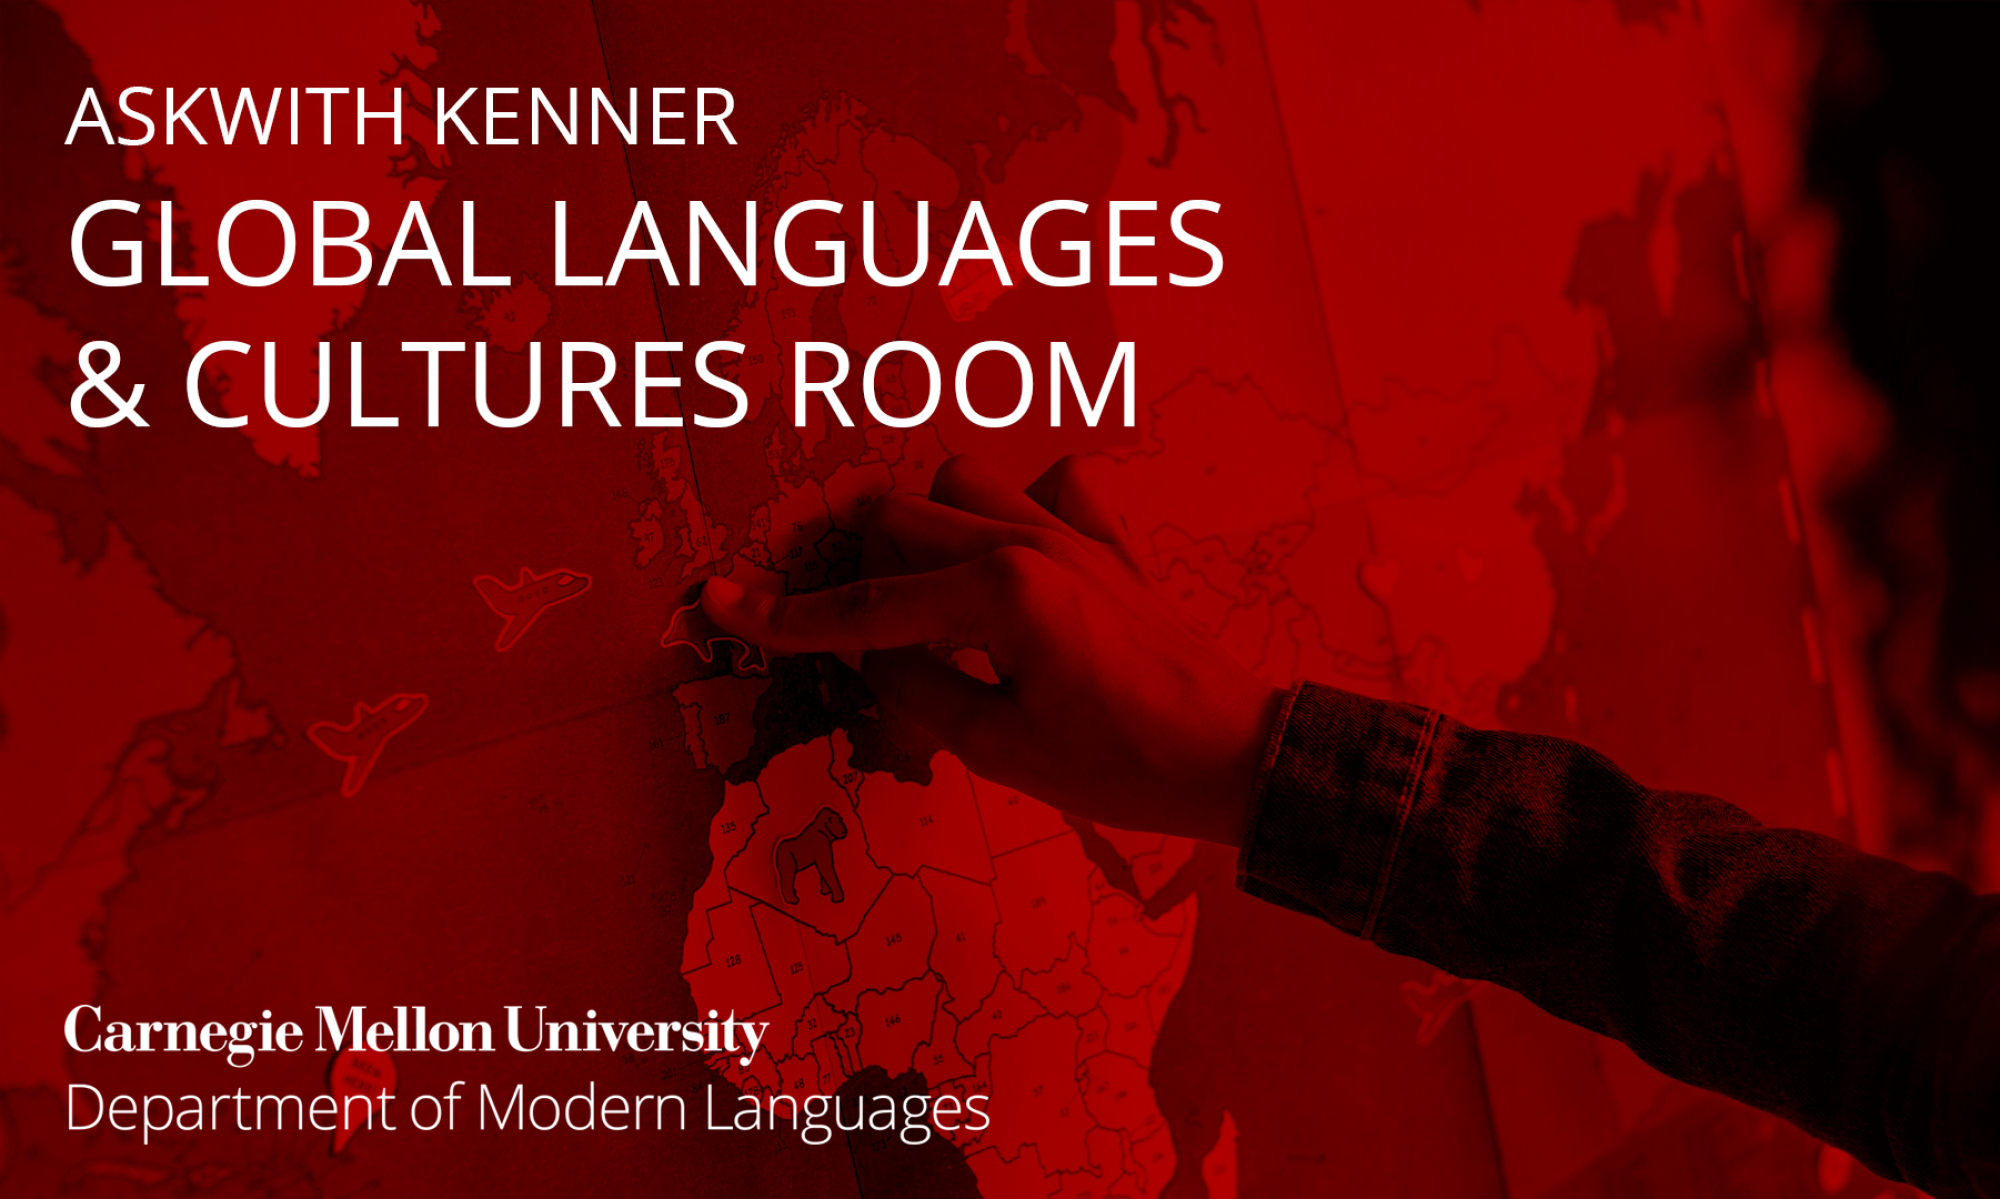 Askwith Kenner Global Languages & Cultures Room